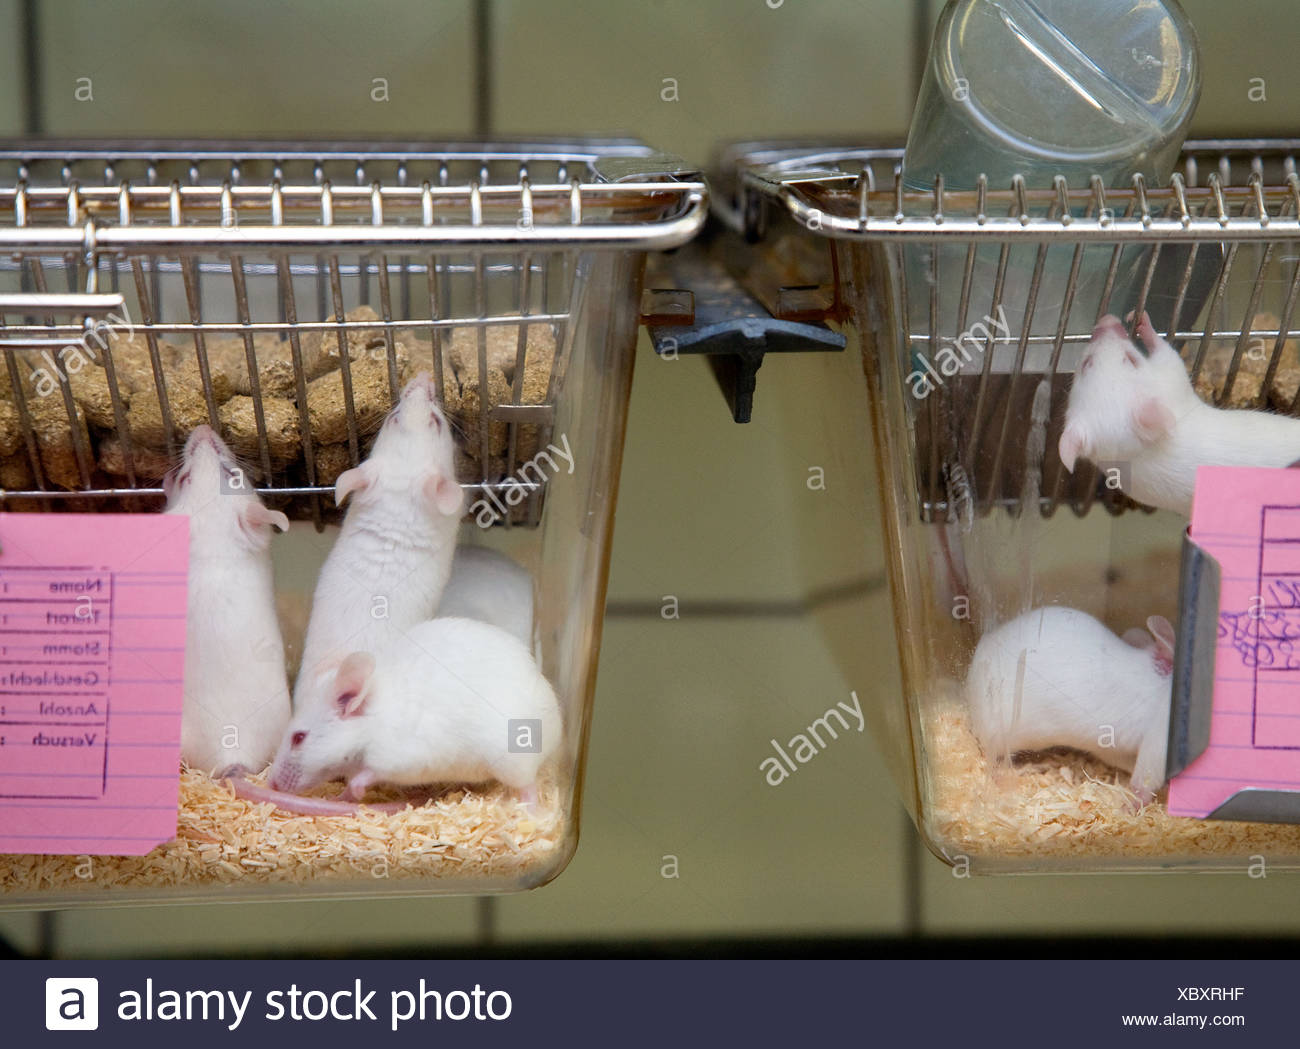 Lab Mouse Cage Stock Photos & Lab Mouse Cage Stock Images